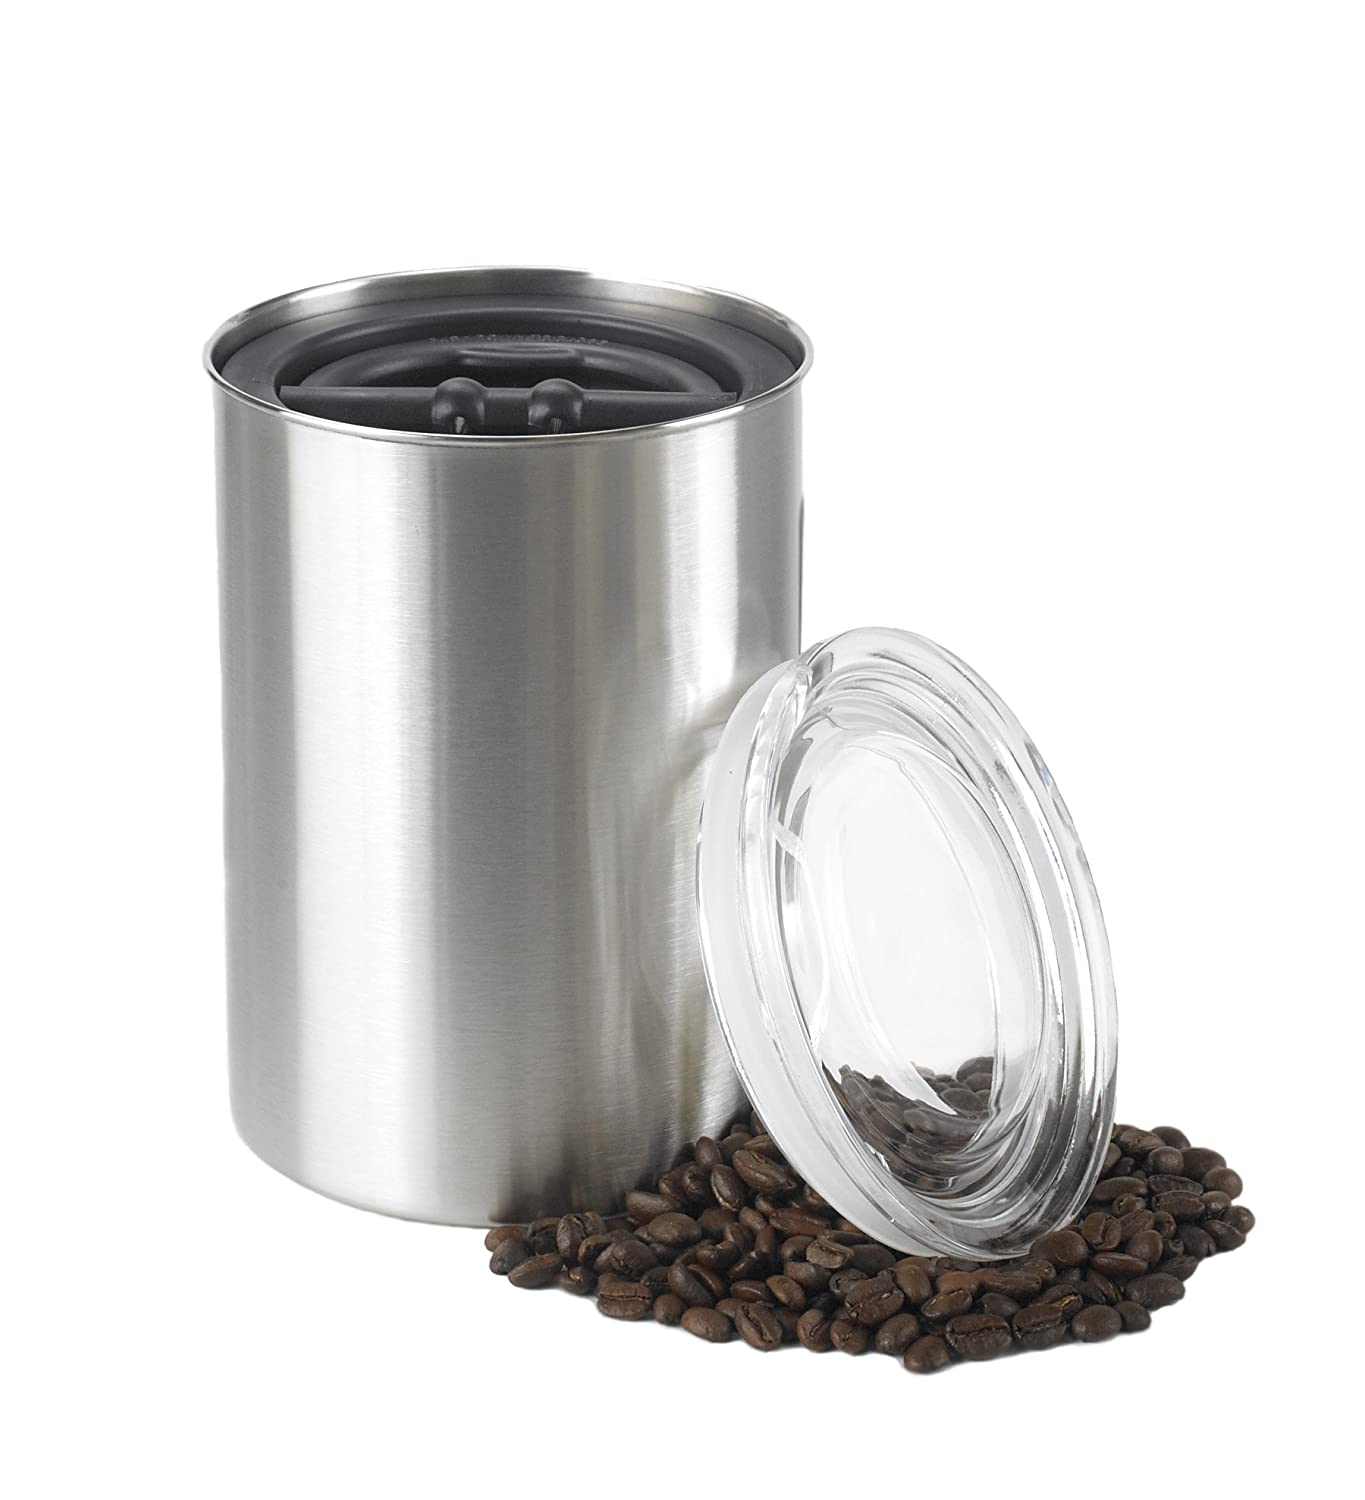 Exceptionnel Amazon.com: Airscape Coffee And Food Storage Canister, 64 Oz   Patented  Airtight Lid Preserves Food Freshness   Stainless Steel   Brushed Steel:  French ...